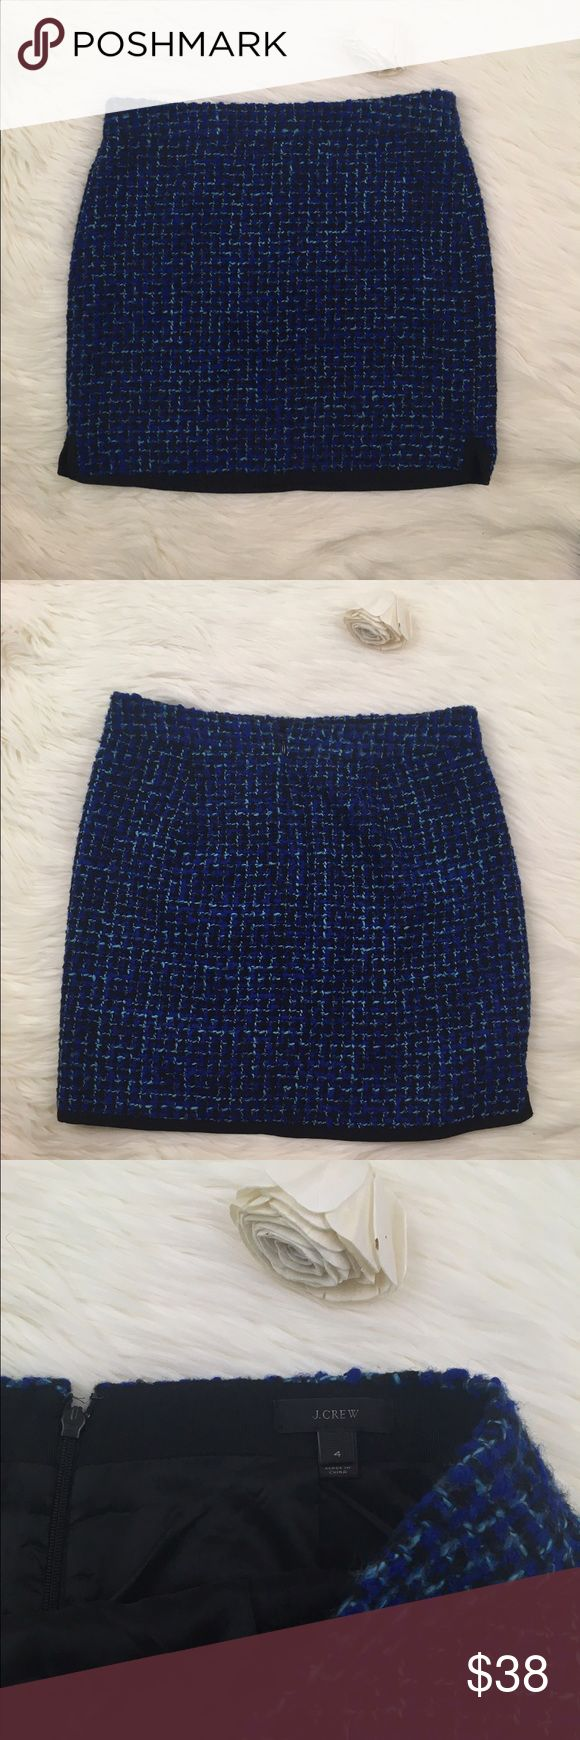 Blue lined J.Crew Twill Skirt J.Crew Tweed/ Twill skirt with black piping/ edging and inner lining. Zip up back and tiny slits on the edge of the skirt. Vibrant Royal blue color! J. Crew Skirts Mini